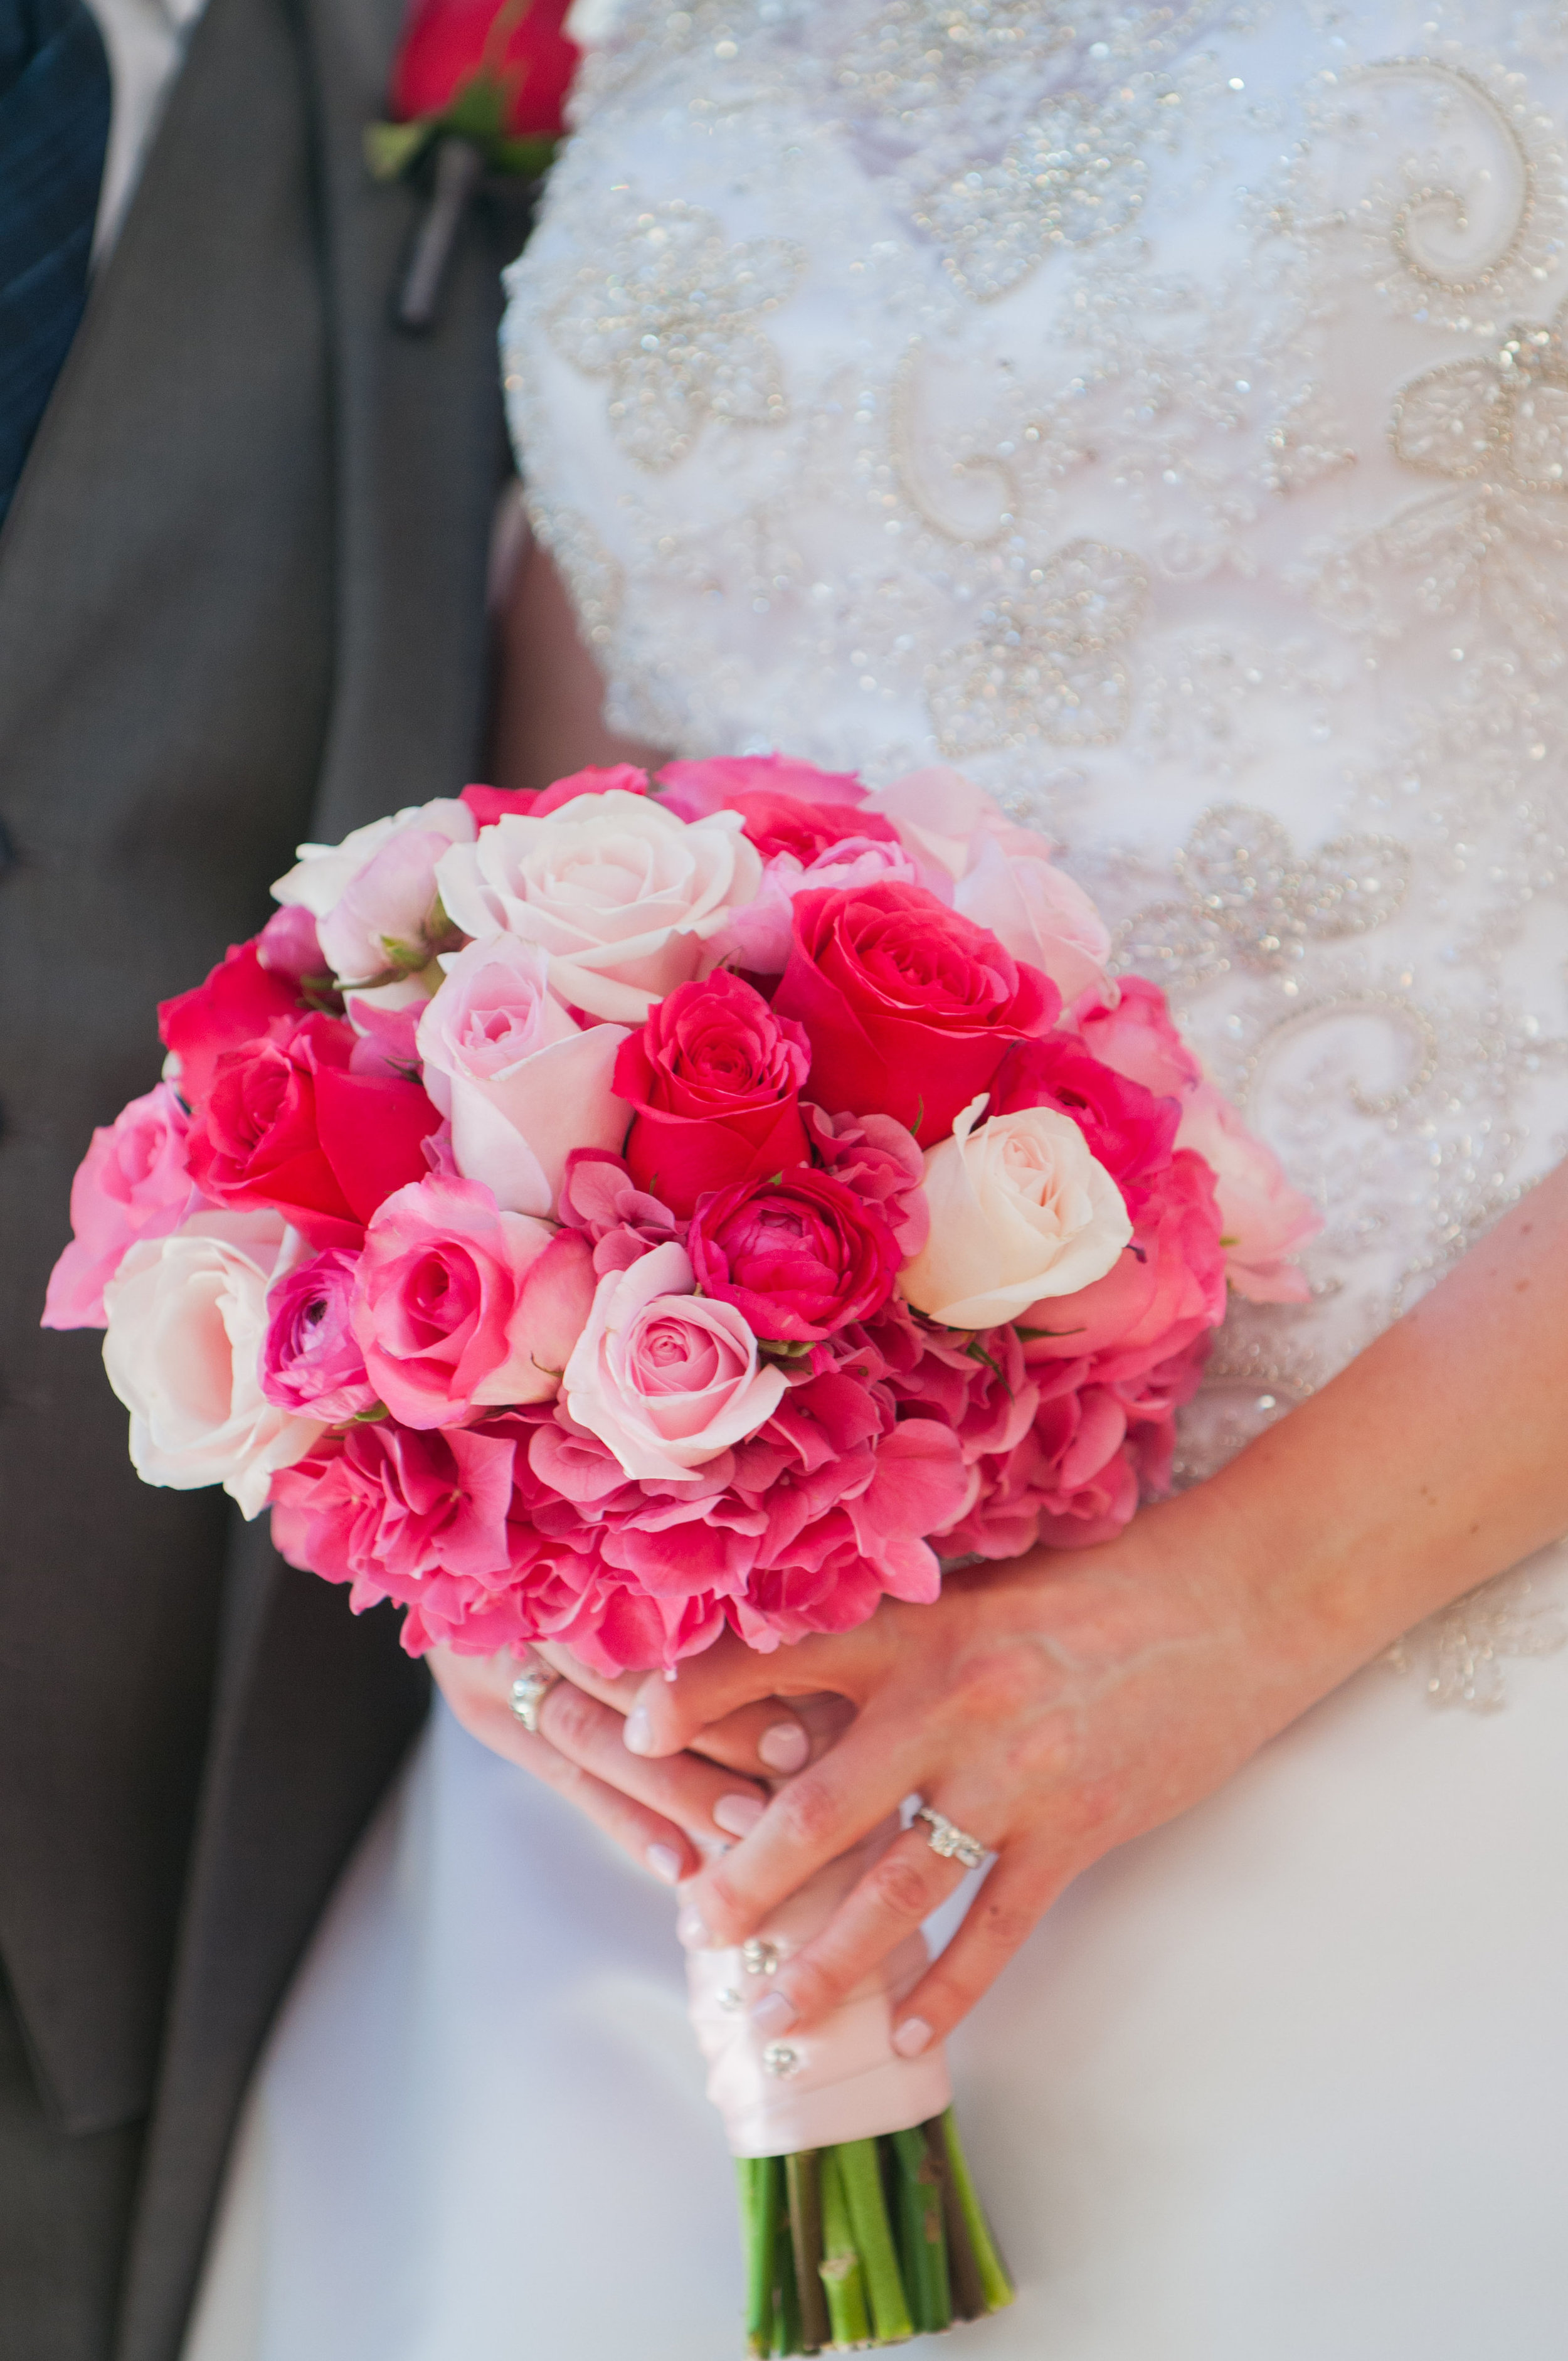 Photography: Coopersmith Photography | Planner: The Simply Elegant Group | DJ: Adagio Djay Entertainment | Bakery: Cocoa and Fig | Dress Designer: JenMar Creations | Floral Designer: Julia's Blooms | Event Venue: The Riverside Room at Minneapolis Event Center